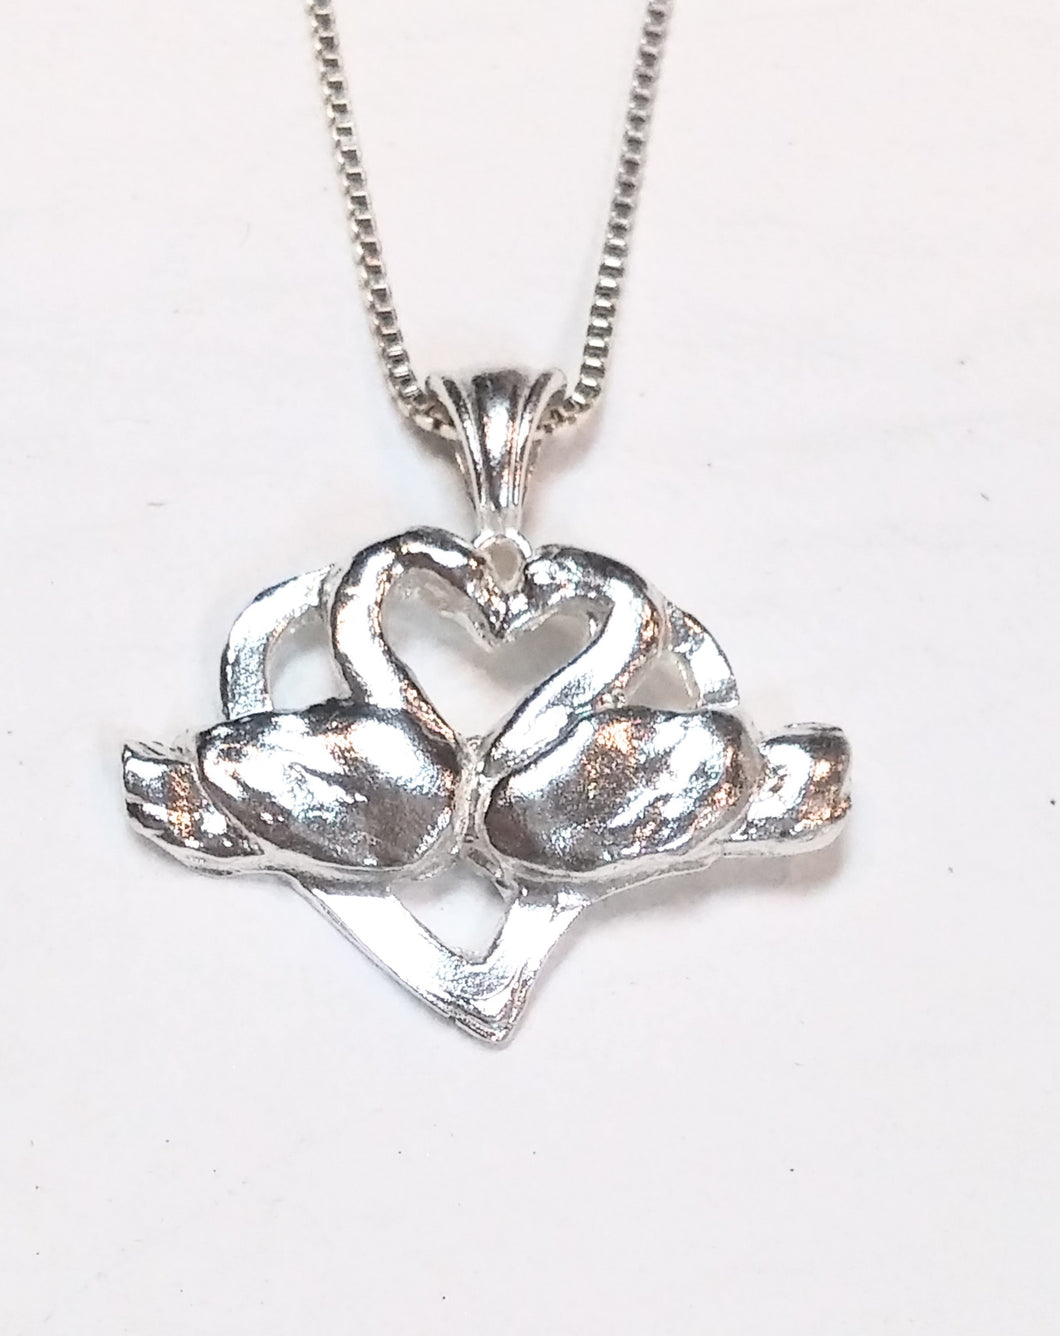 Kissing Swans pendant necklace